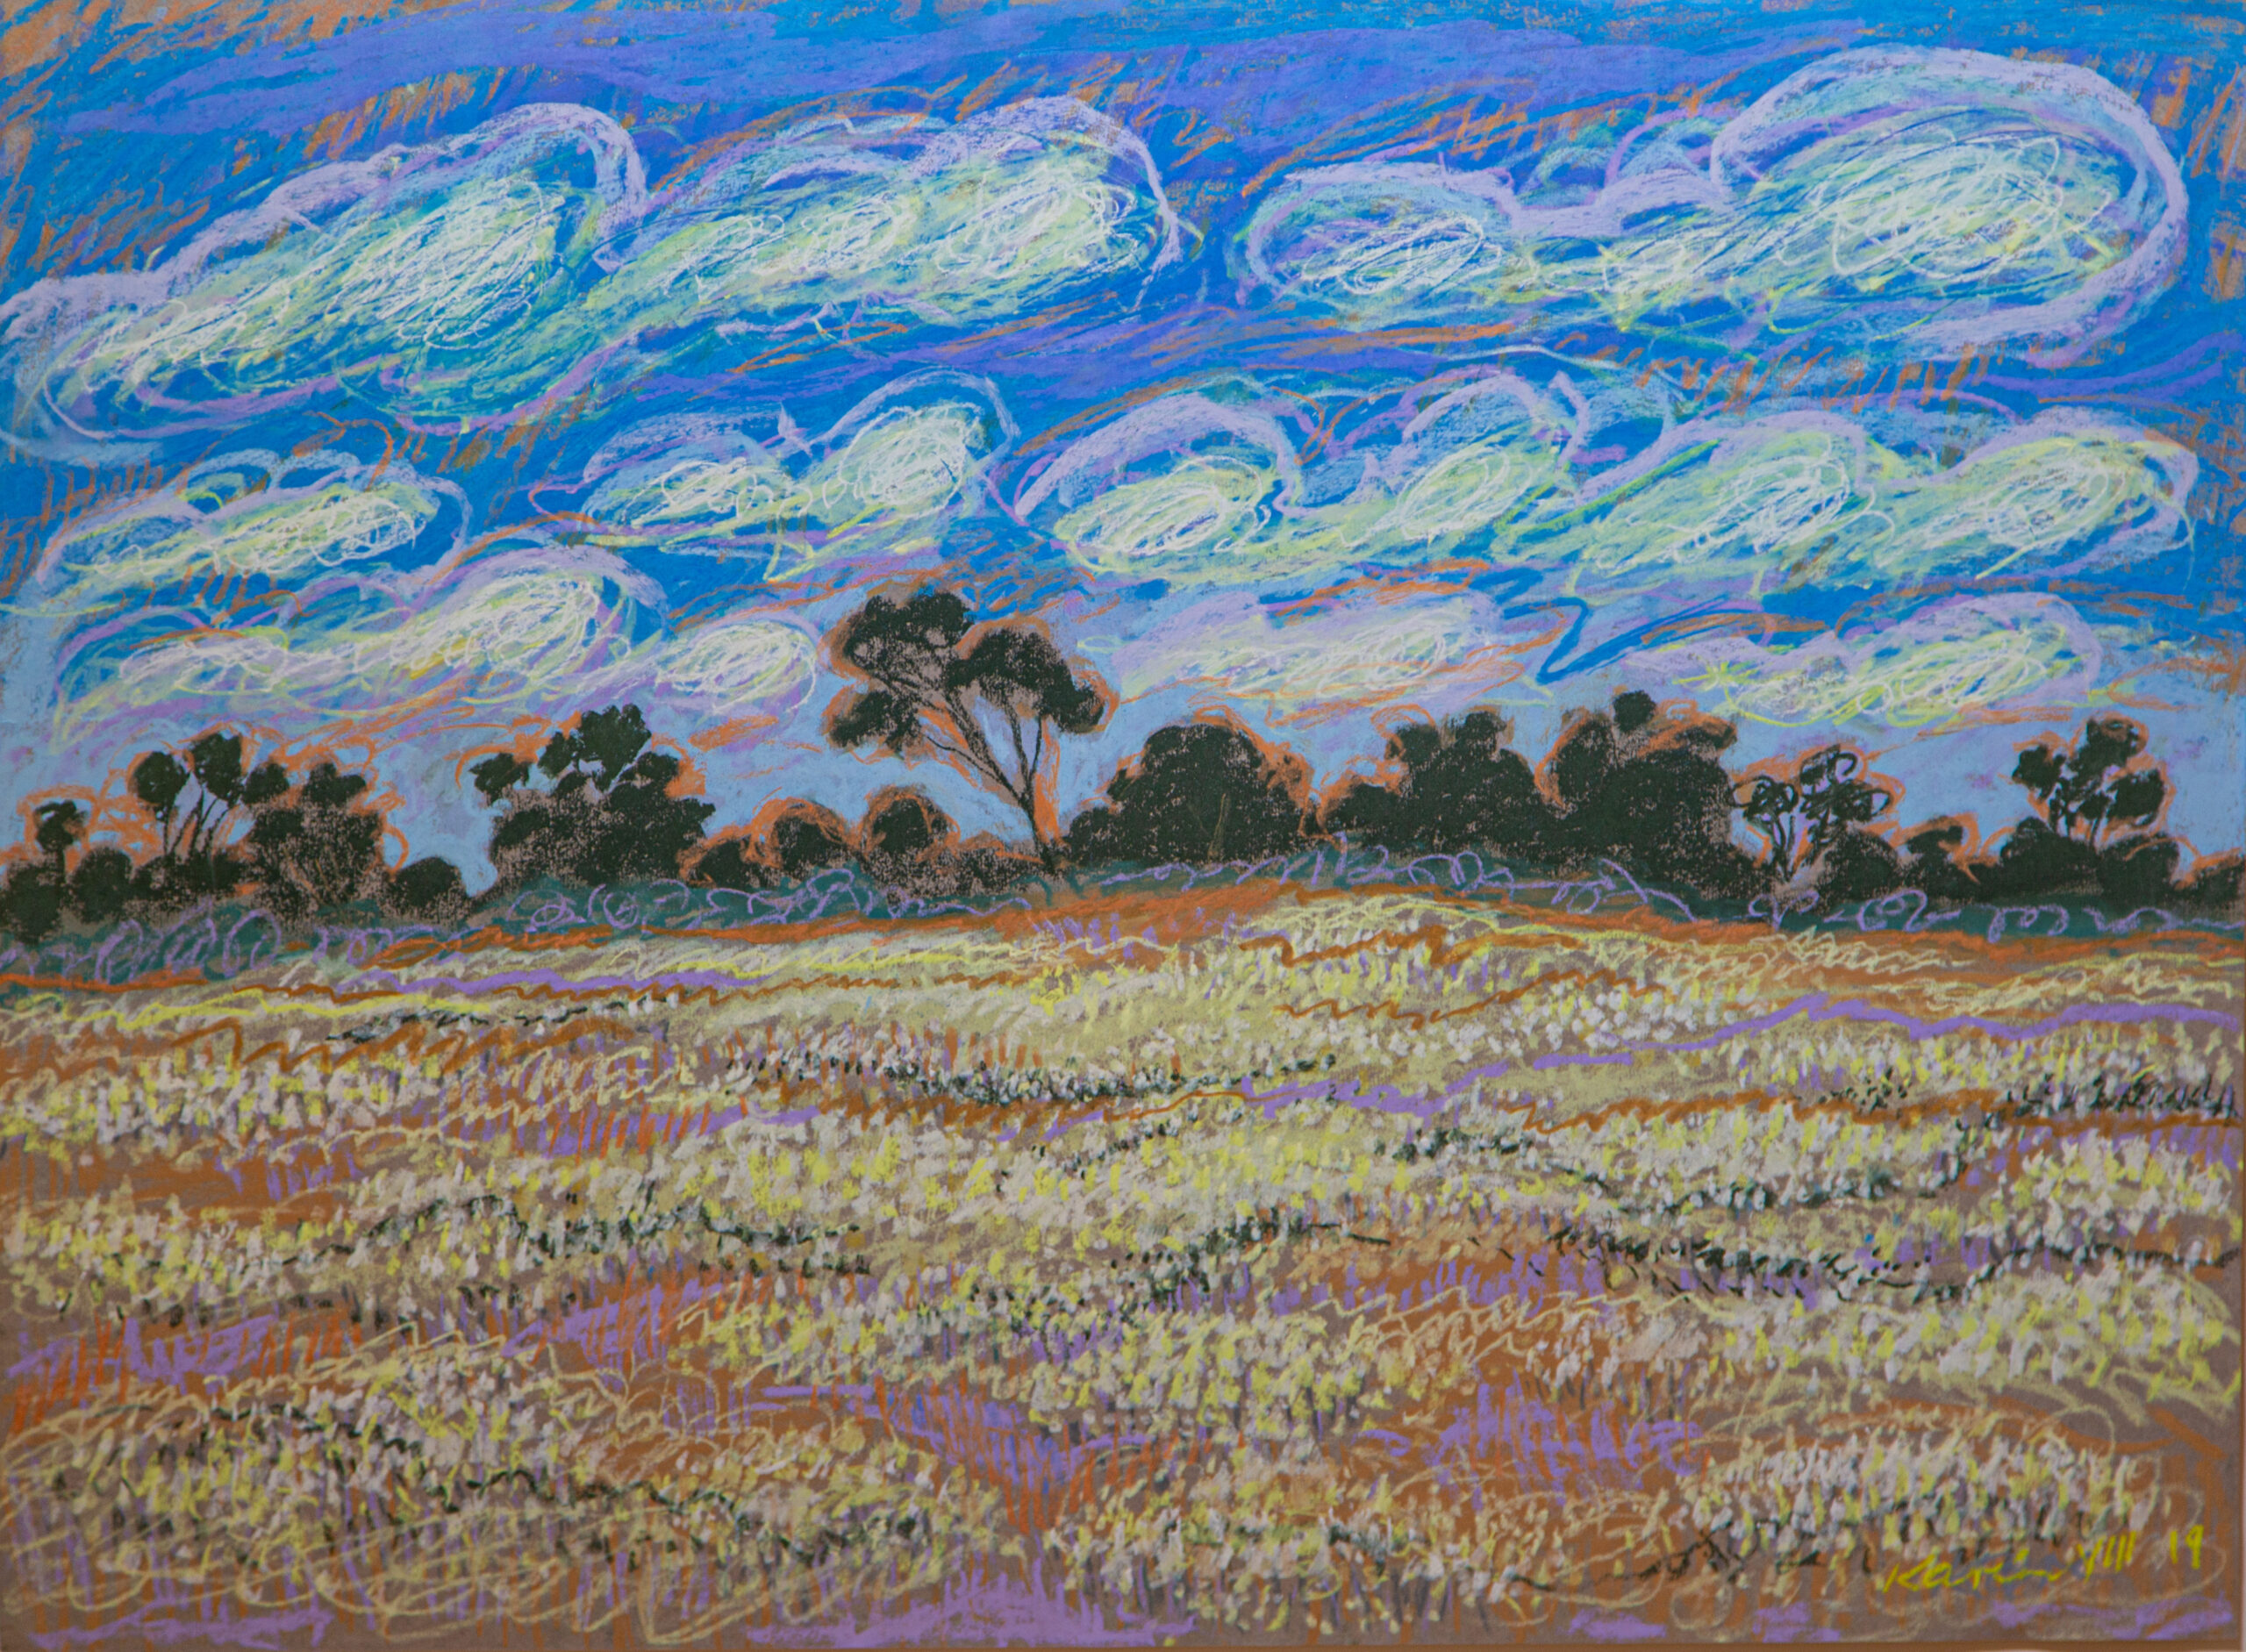 CLOUDS AND DAISIES artwork